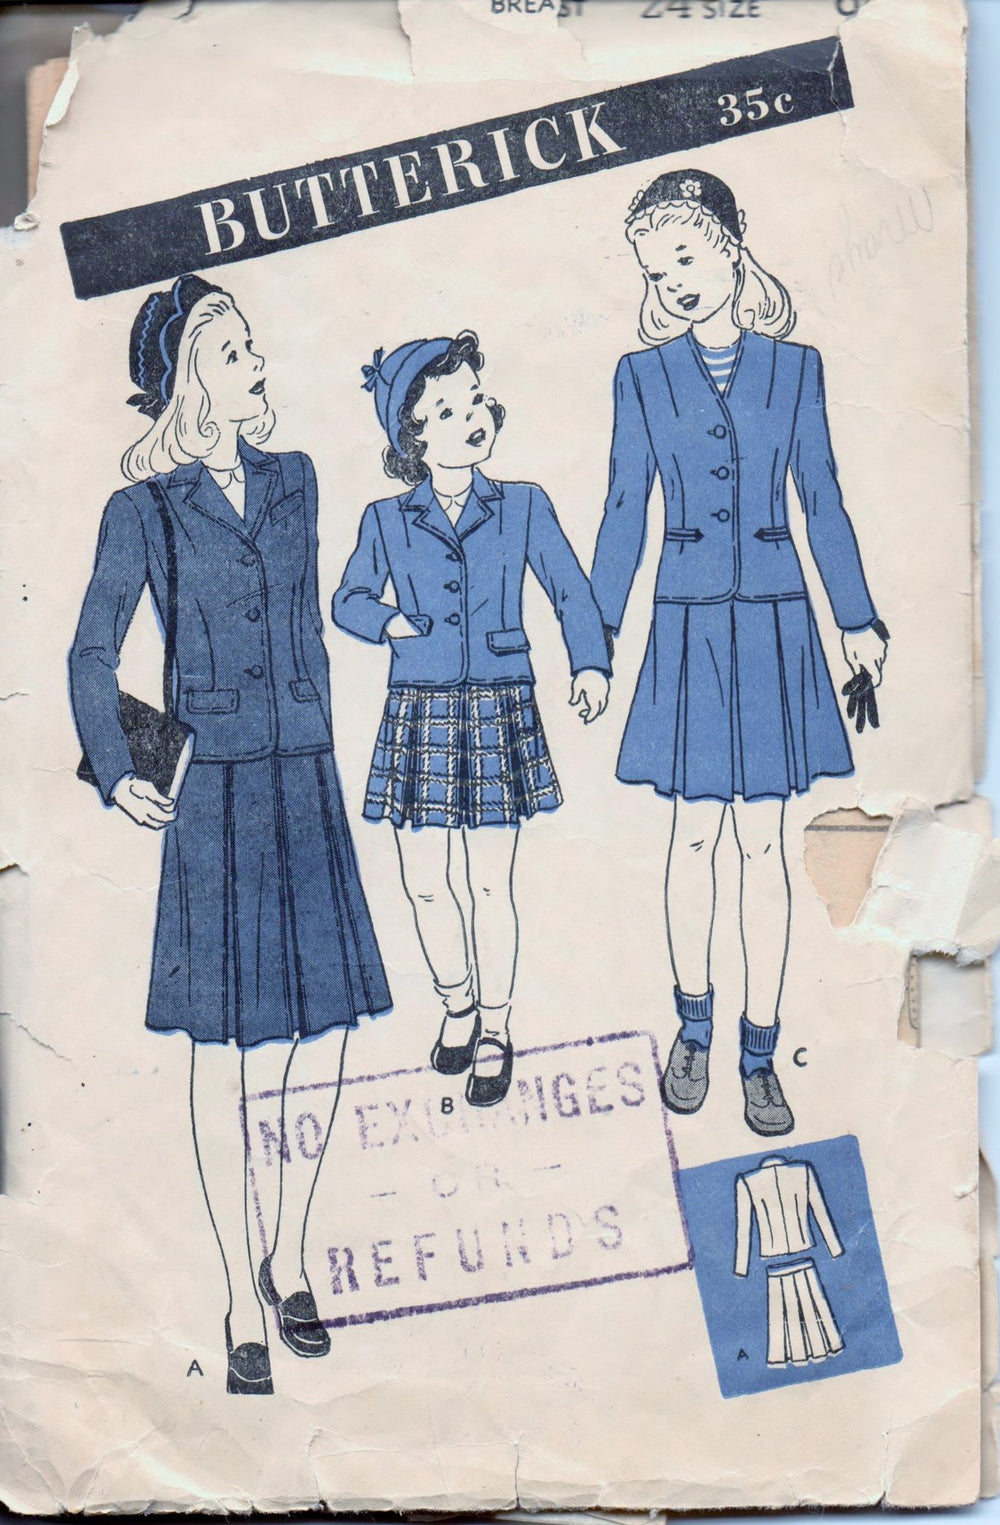 Butterick 3129 Young Girls Tailored Suit Jacket Skirt Vintage 1940's Sewing Pattern - VintageStitching - Vintage Sewing Patterns